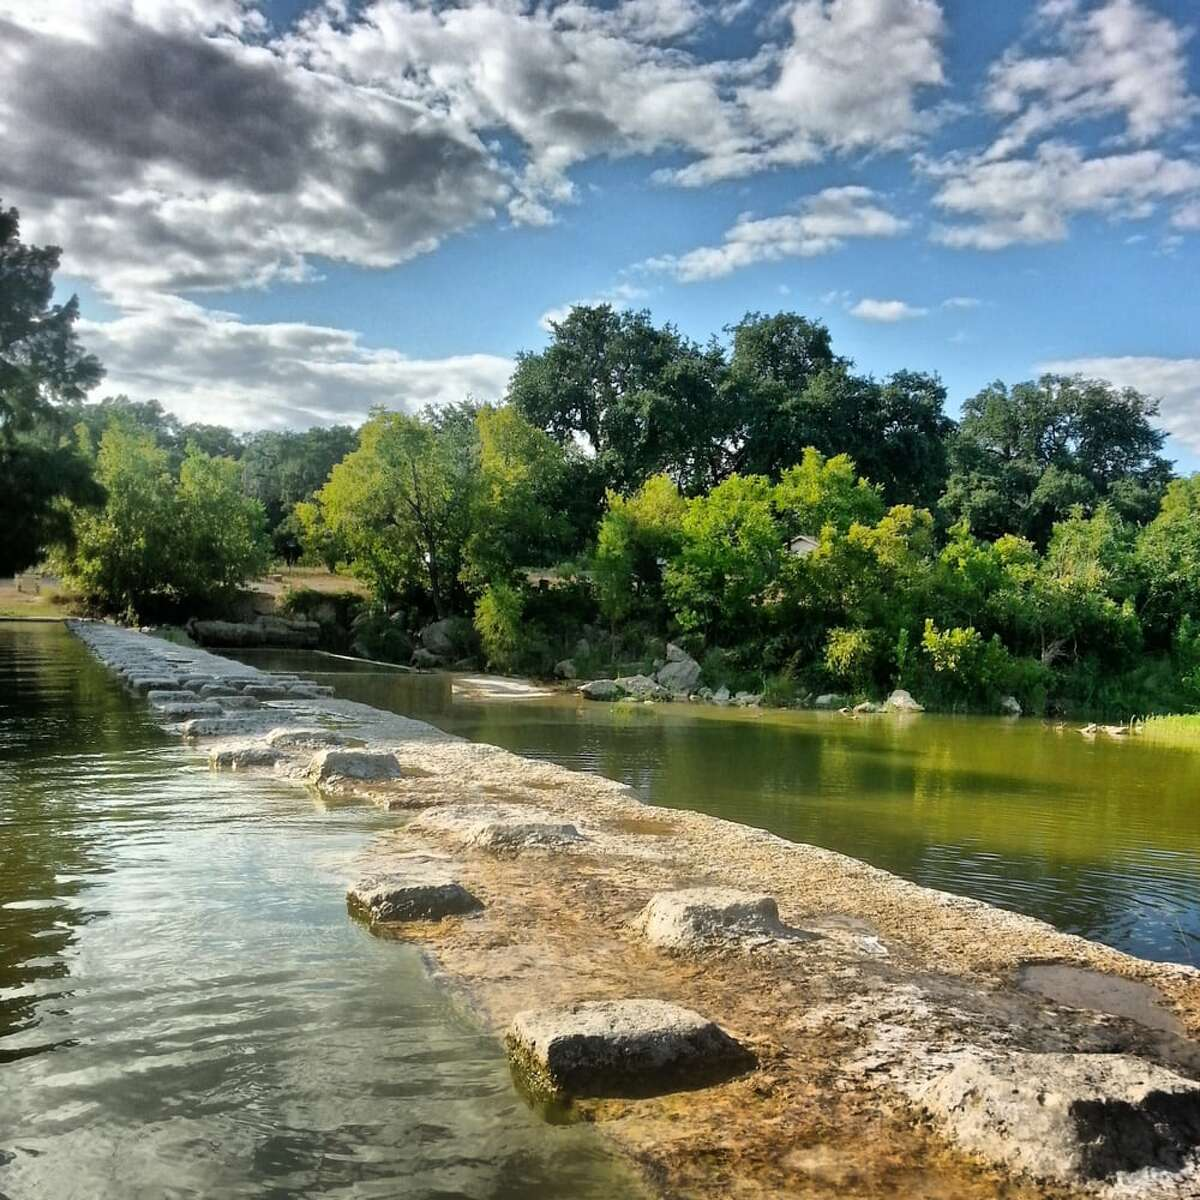 Blanco State Park | Blanco, Texas Just an hour away from Austin and San Antonio is Blanco State Park. Enjoy a weekend campout full of afternoon swimming, fishing, picnics, or taking a leisurely float down the spring-fed Blanco River to cool you off.